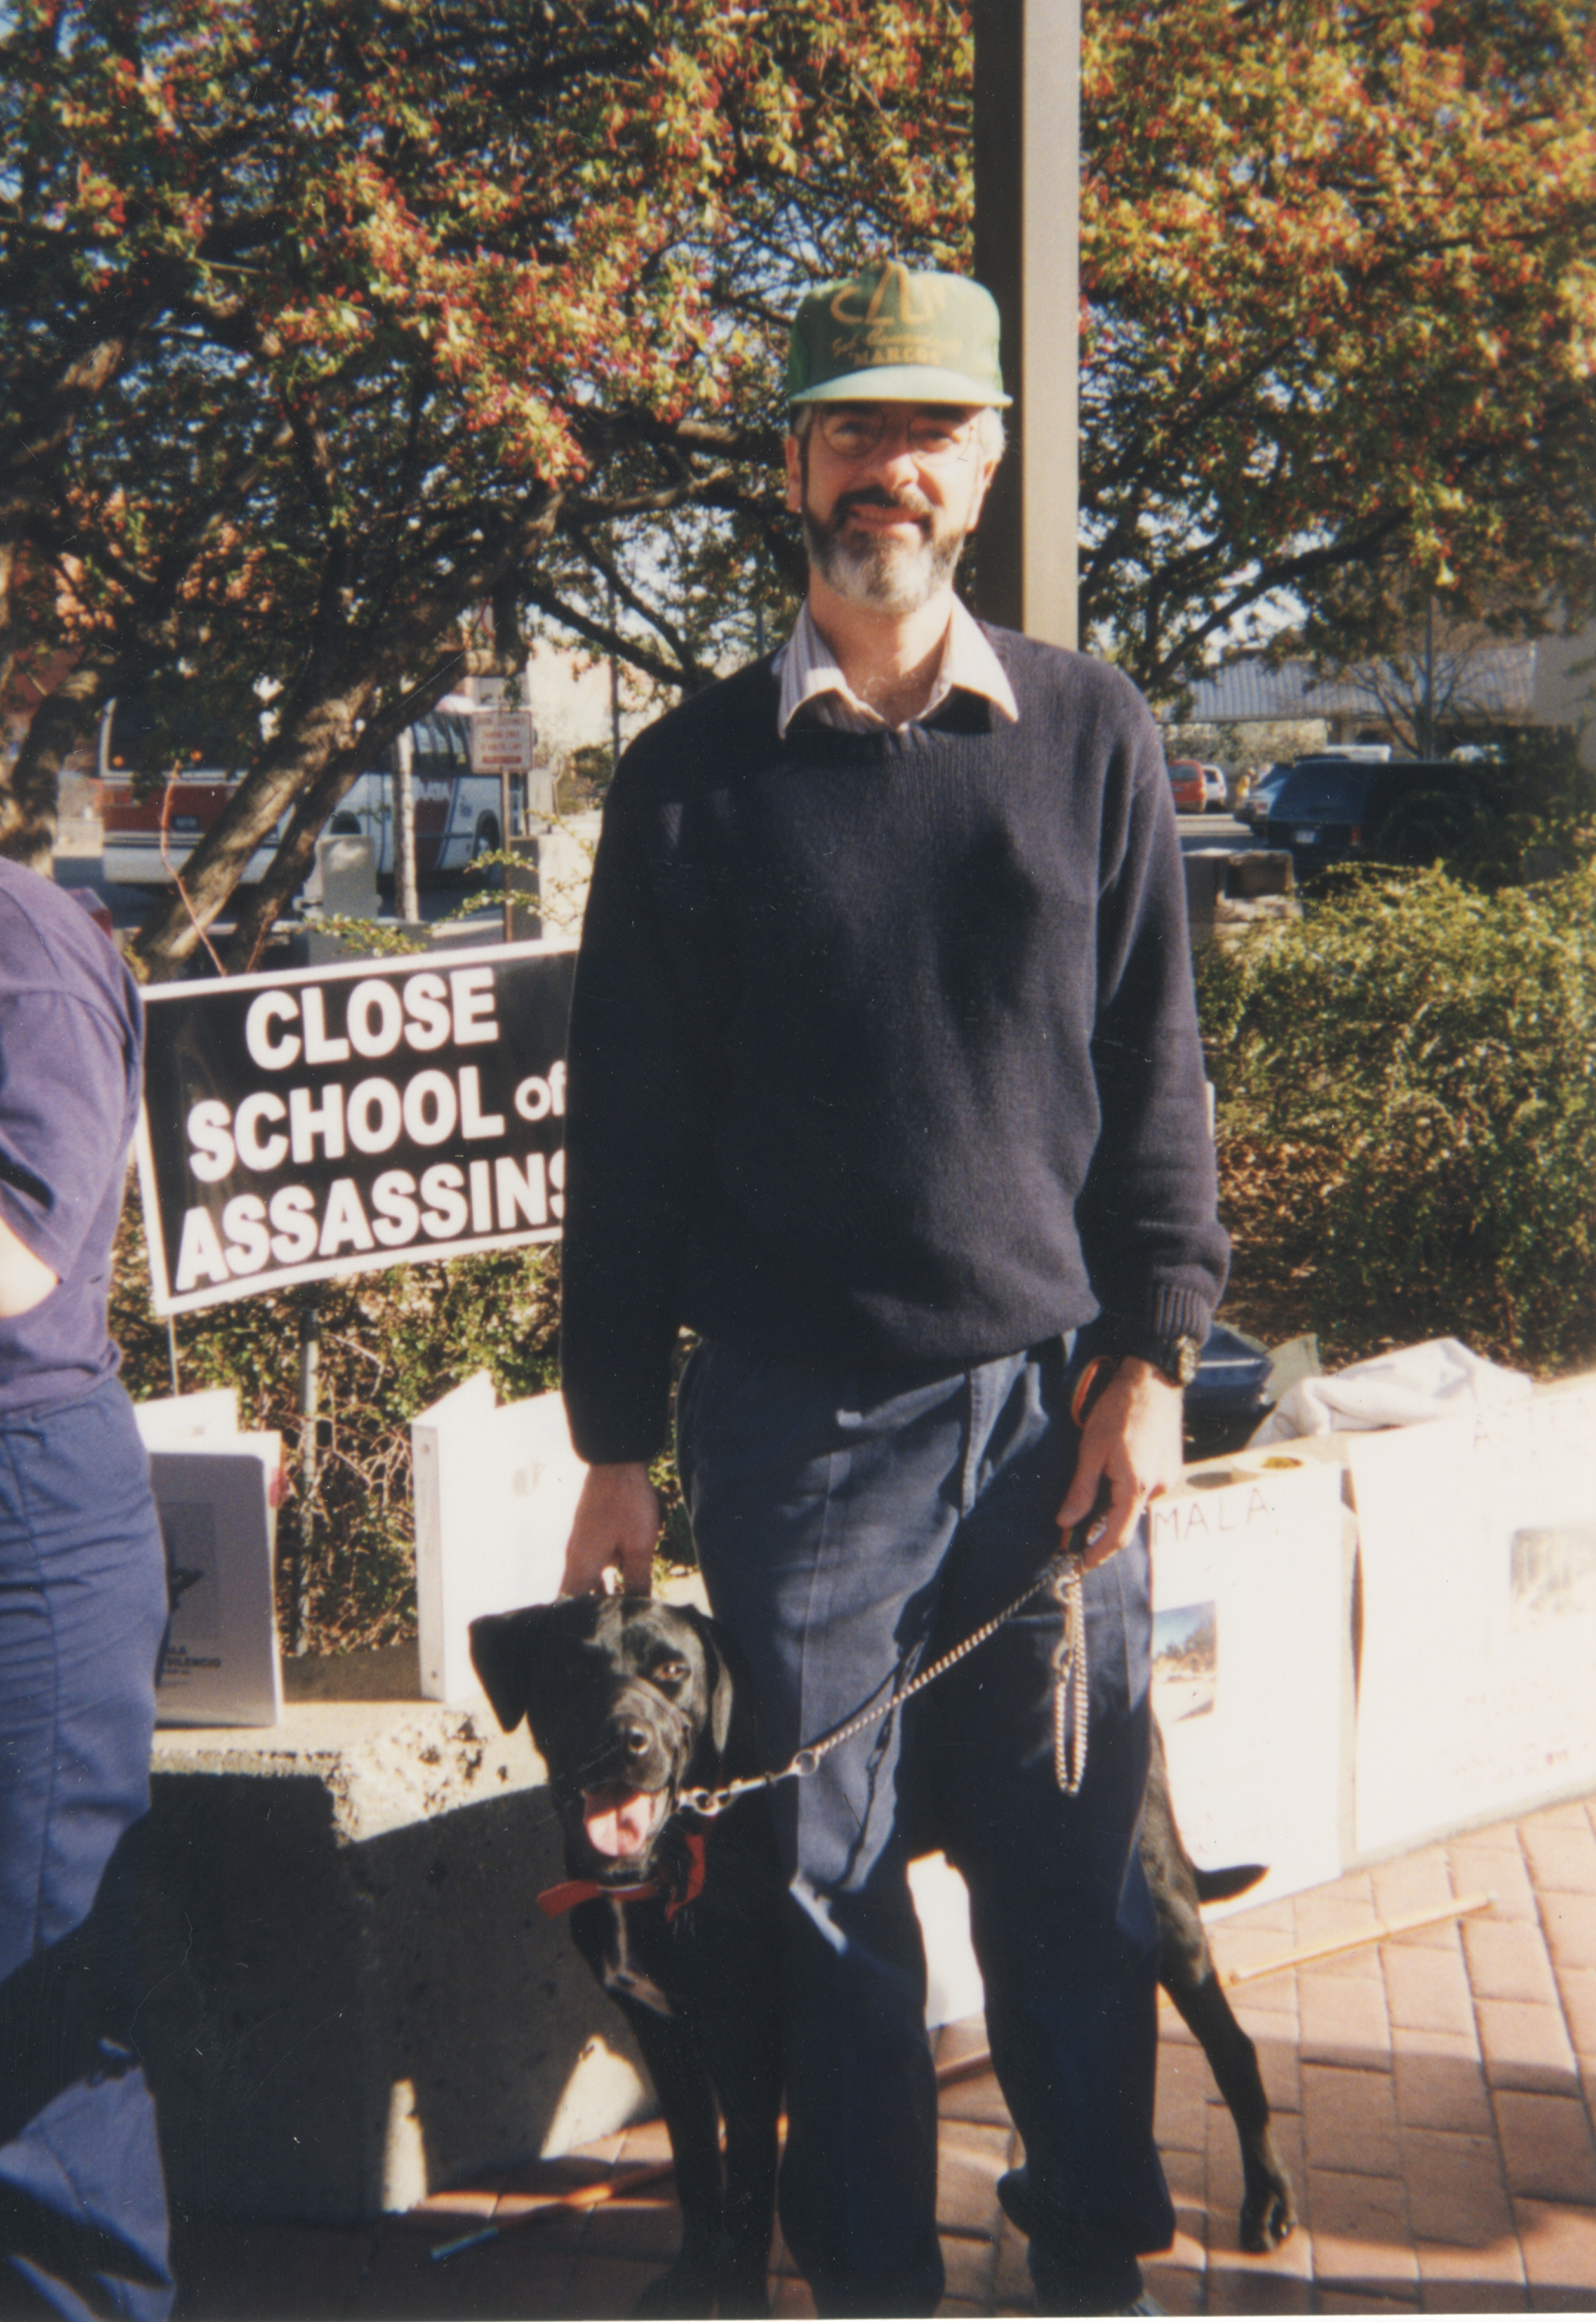 Interfaith Council for Peace and Justice: SOAW Protest, 1999 image